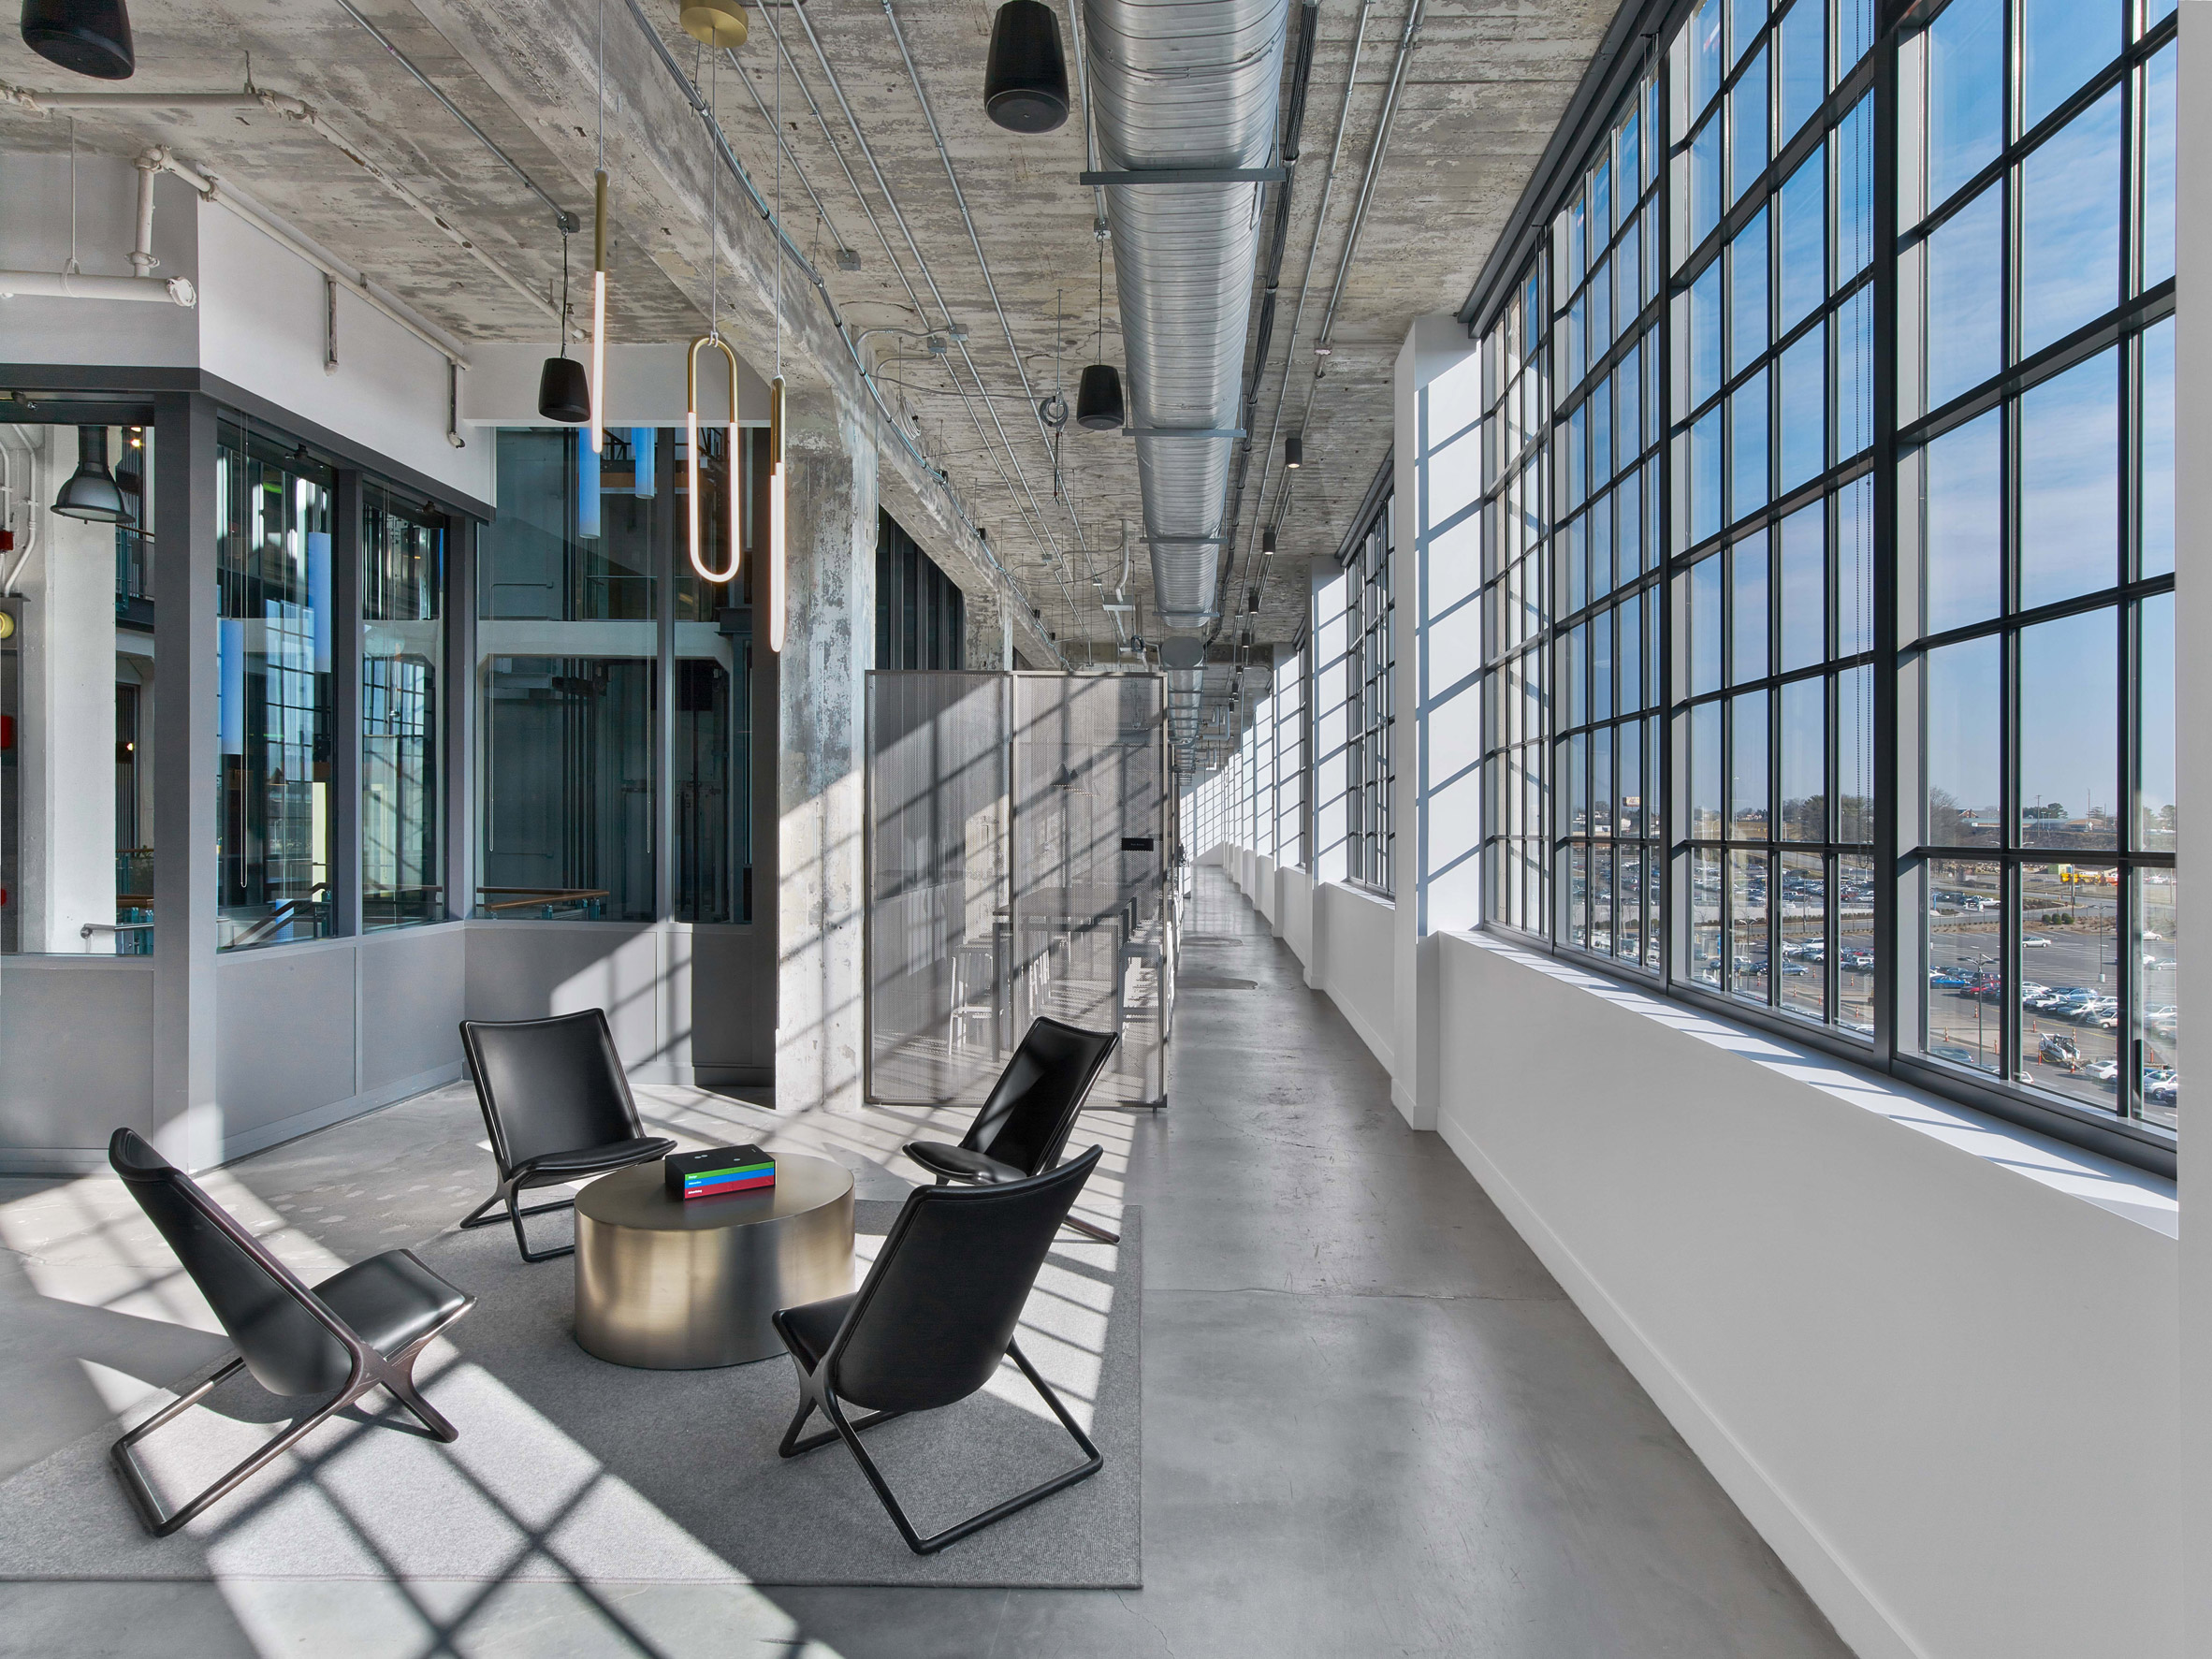 mullen-lowe-offices-tpg-architecture-interiors-north-carolina-usa_dezeen_2364_col_6.jpg